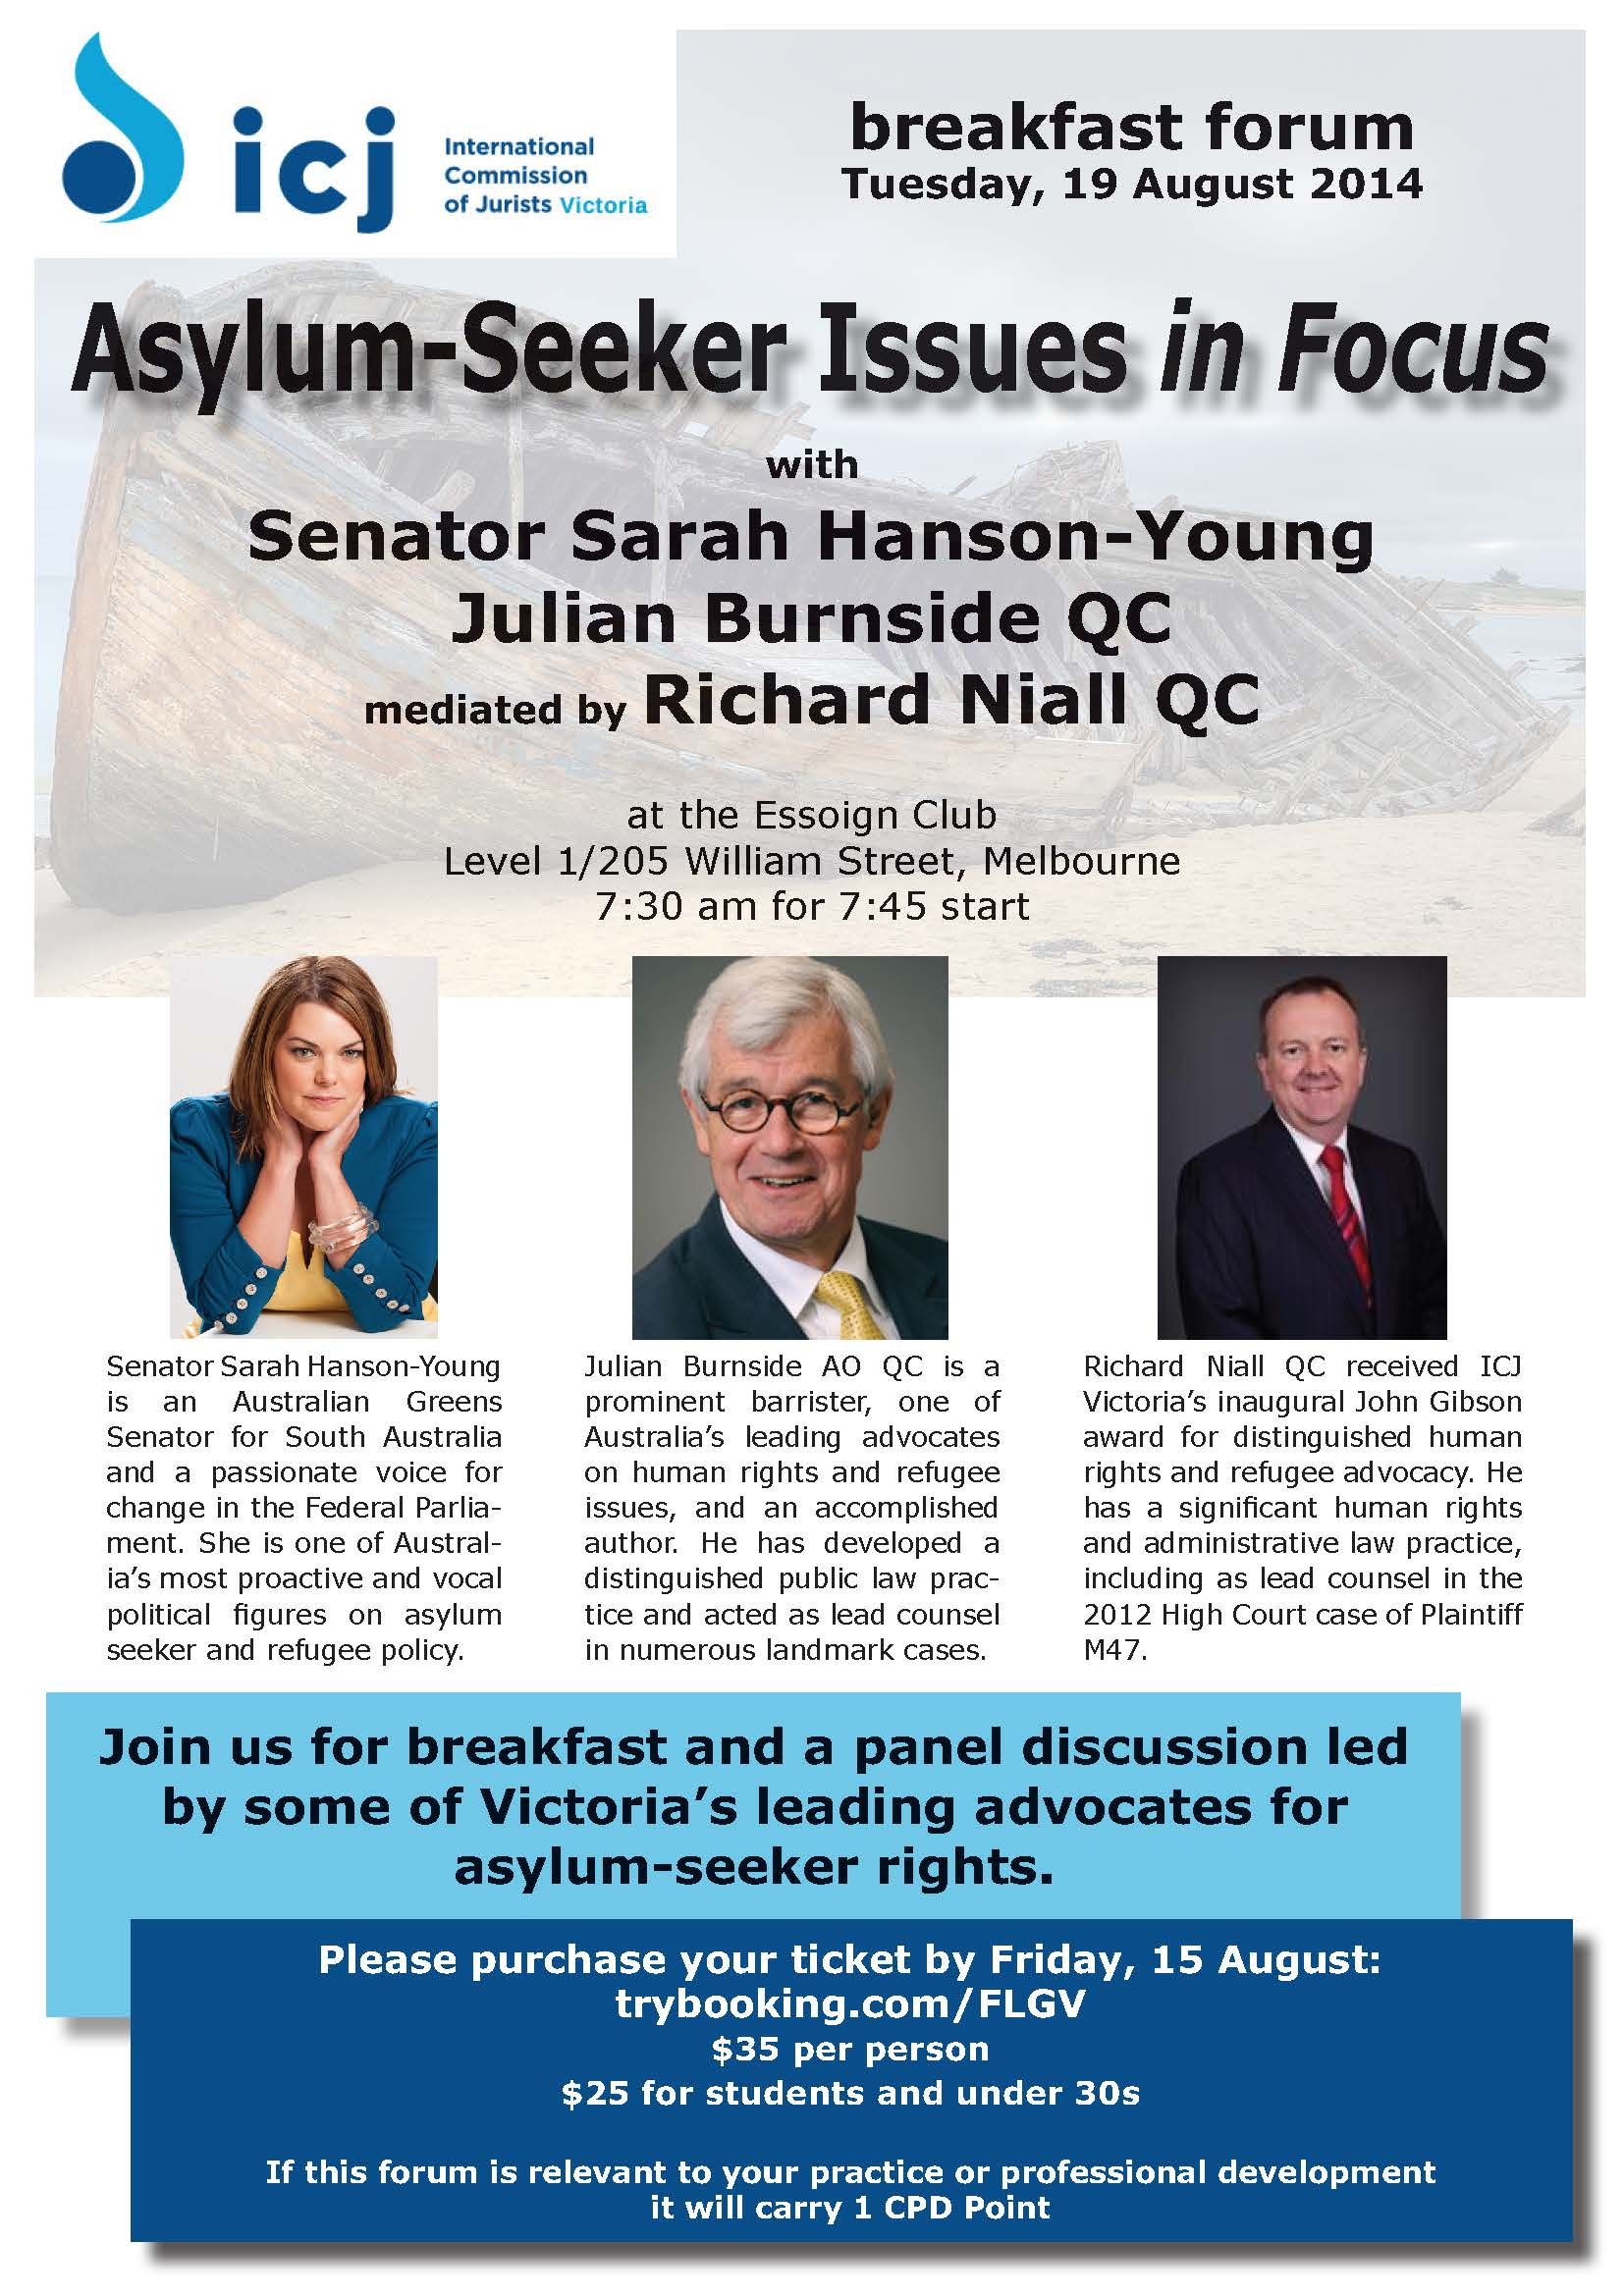 ICJV - Asylum-Seeker Issues in Focus